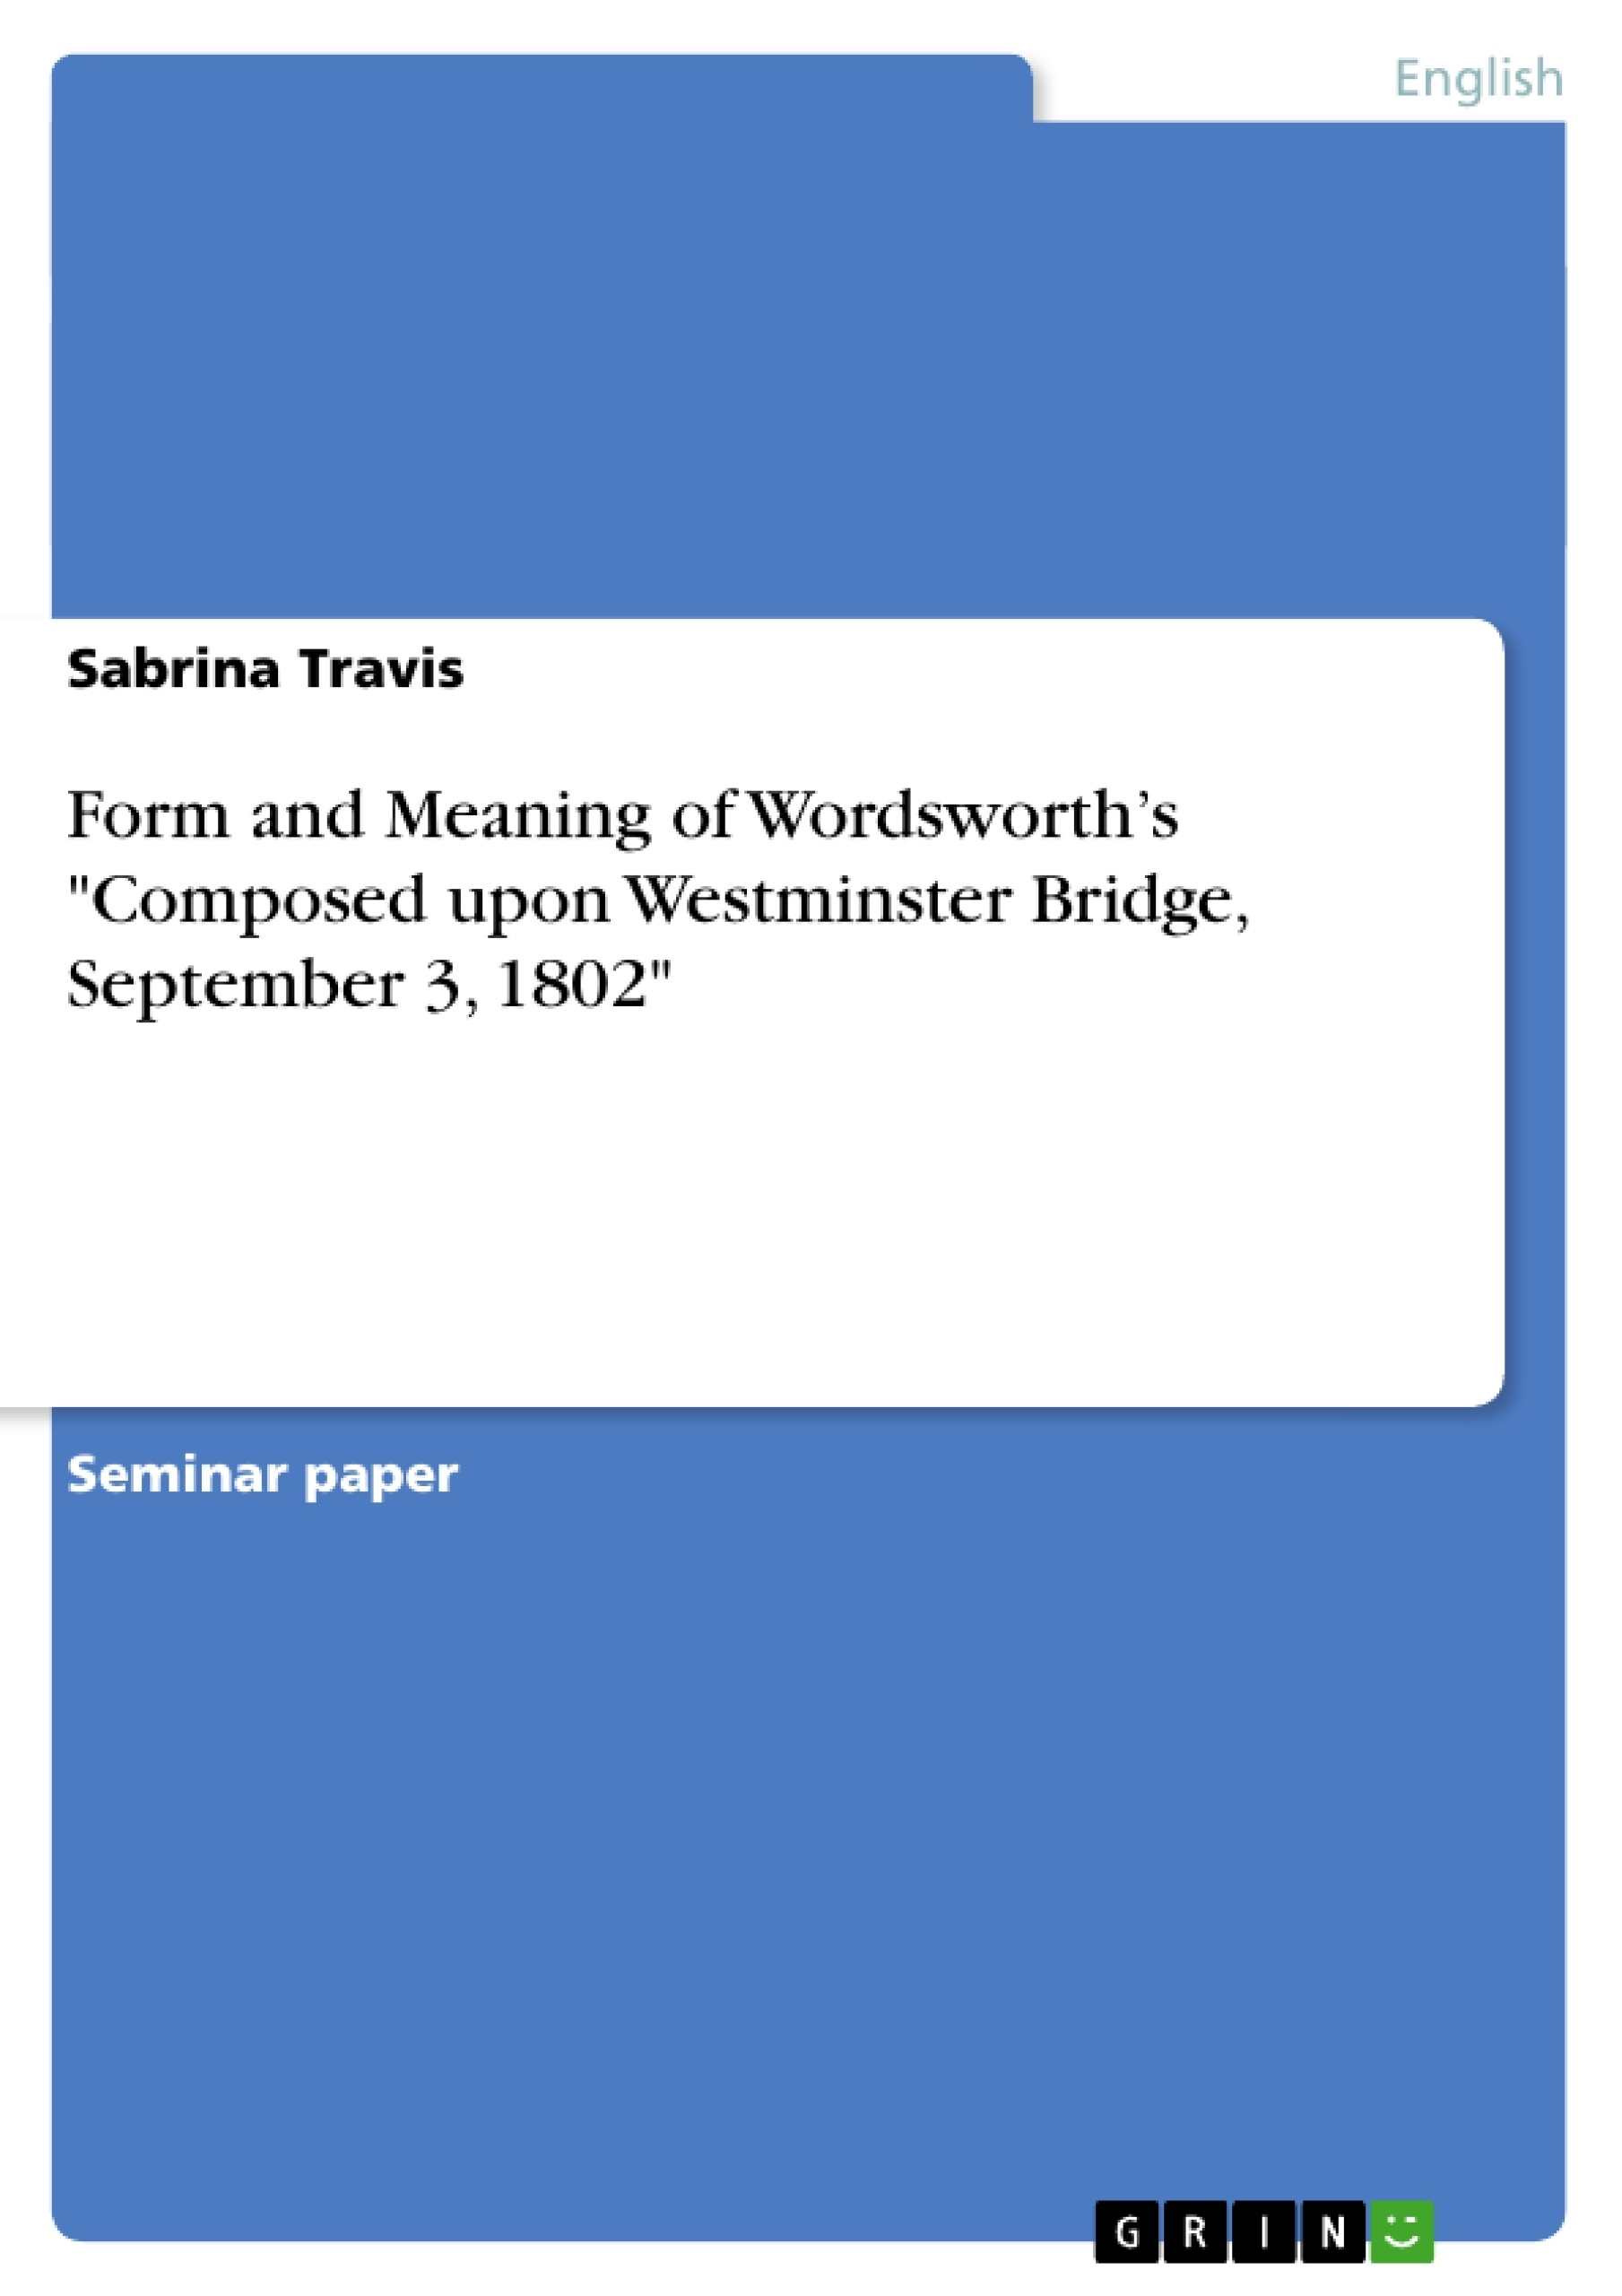 Form And Meaning Of Wordsworth S Composed Upon Westminster Grin The Poem Bridge